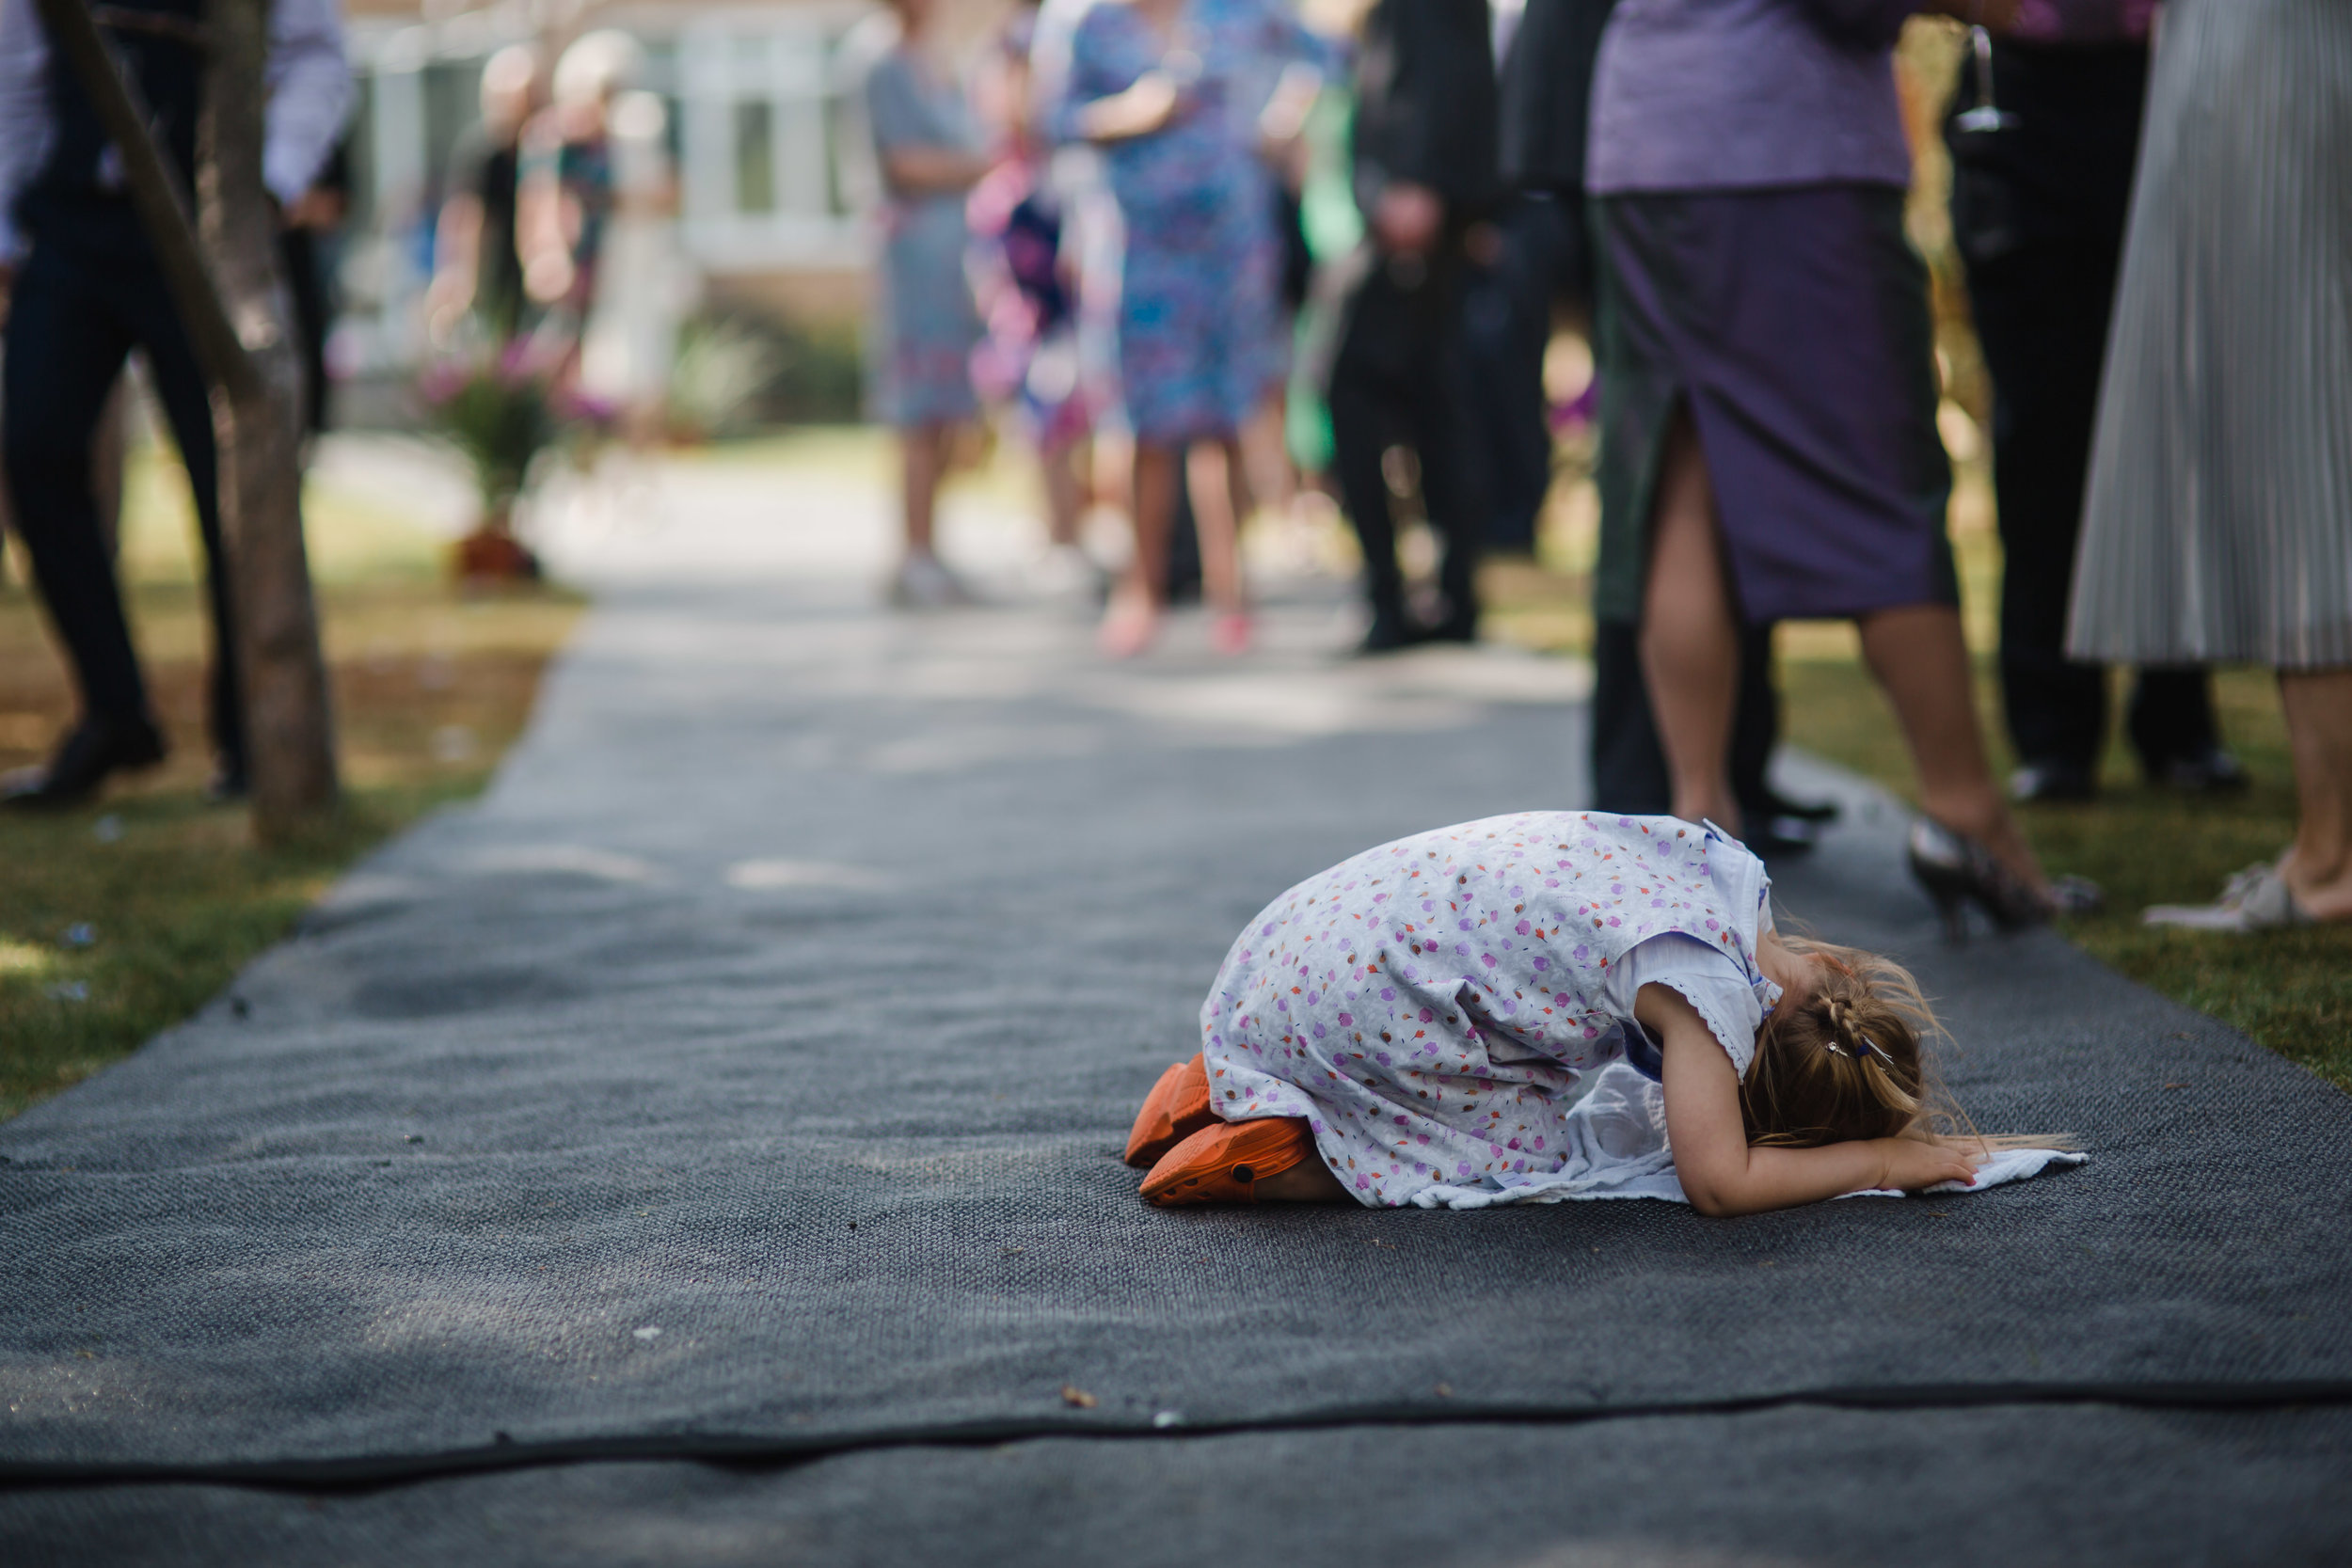 a child cries on the floor at a wedding